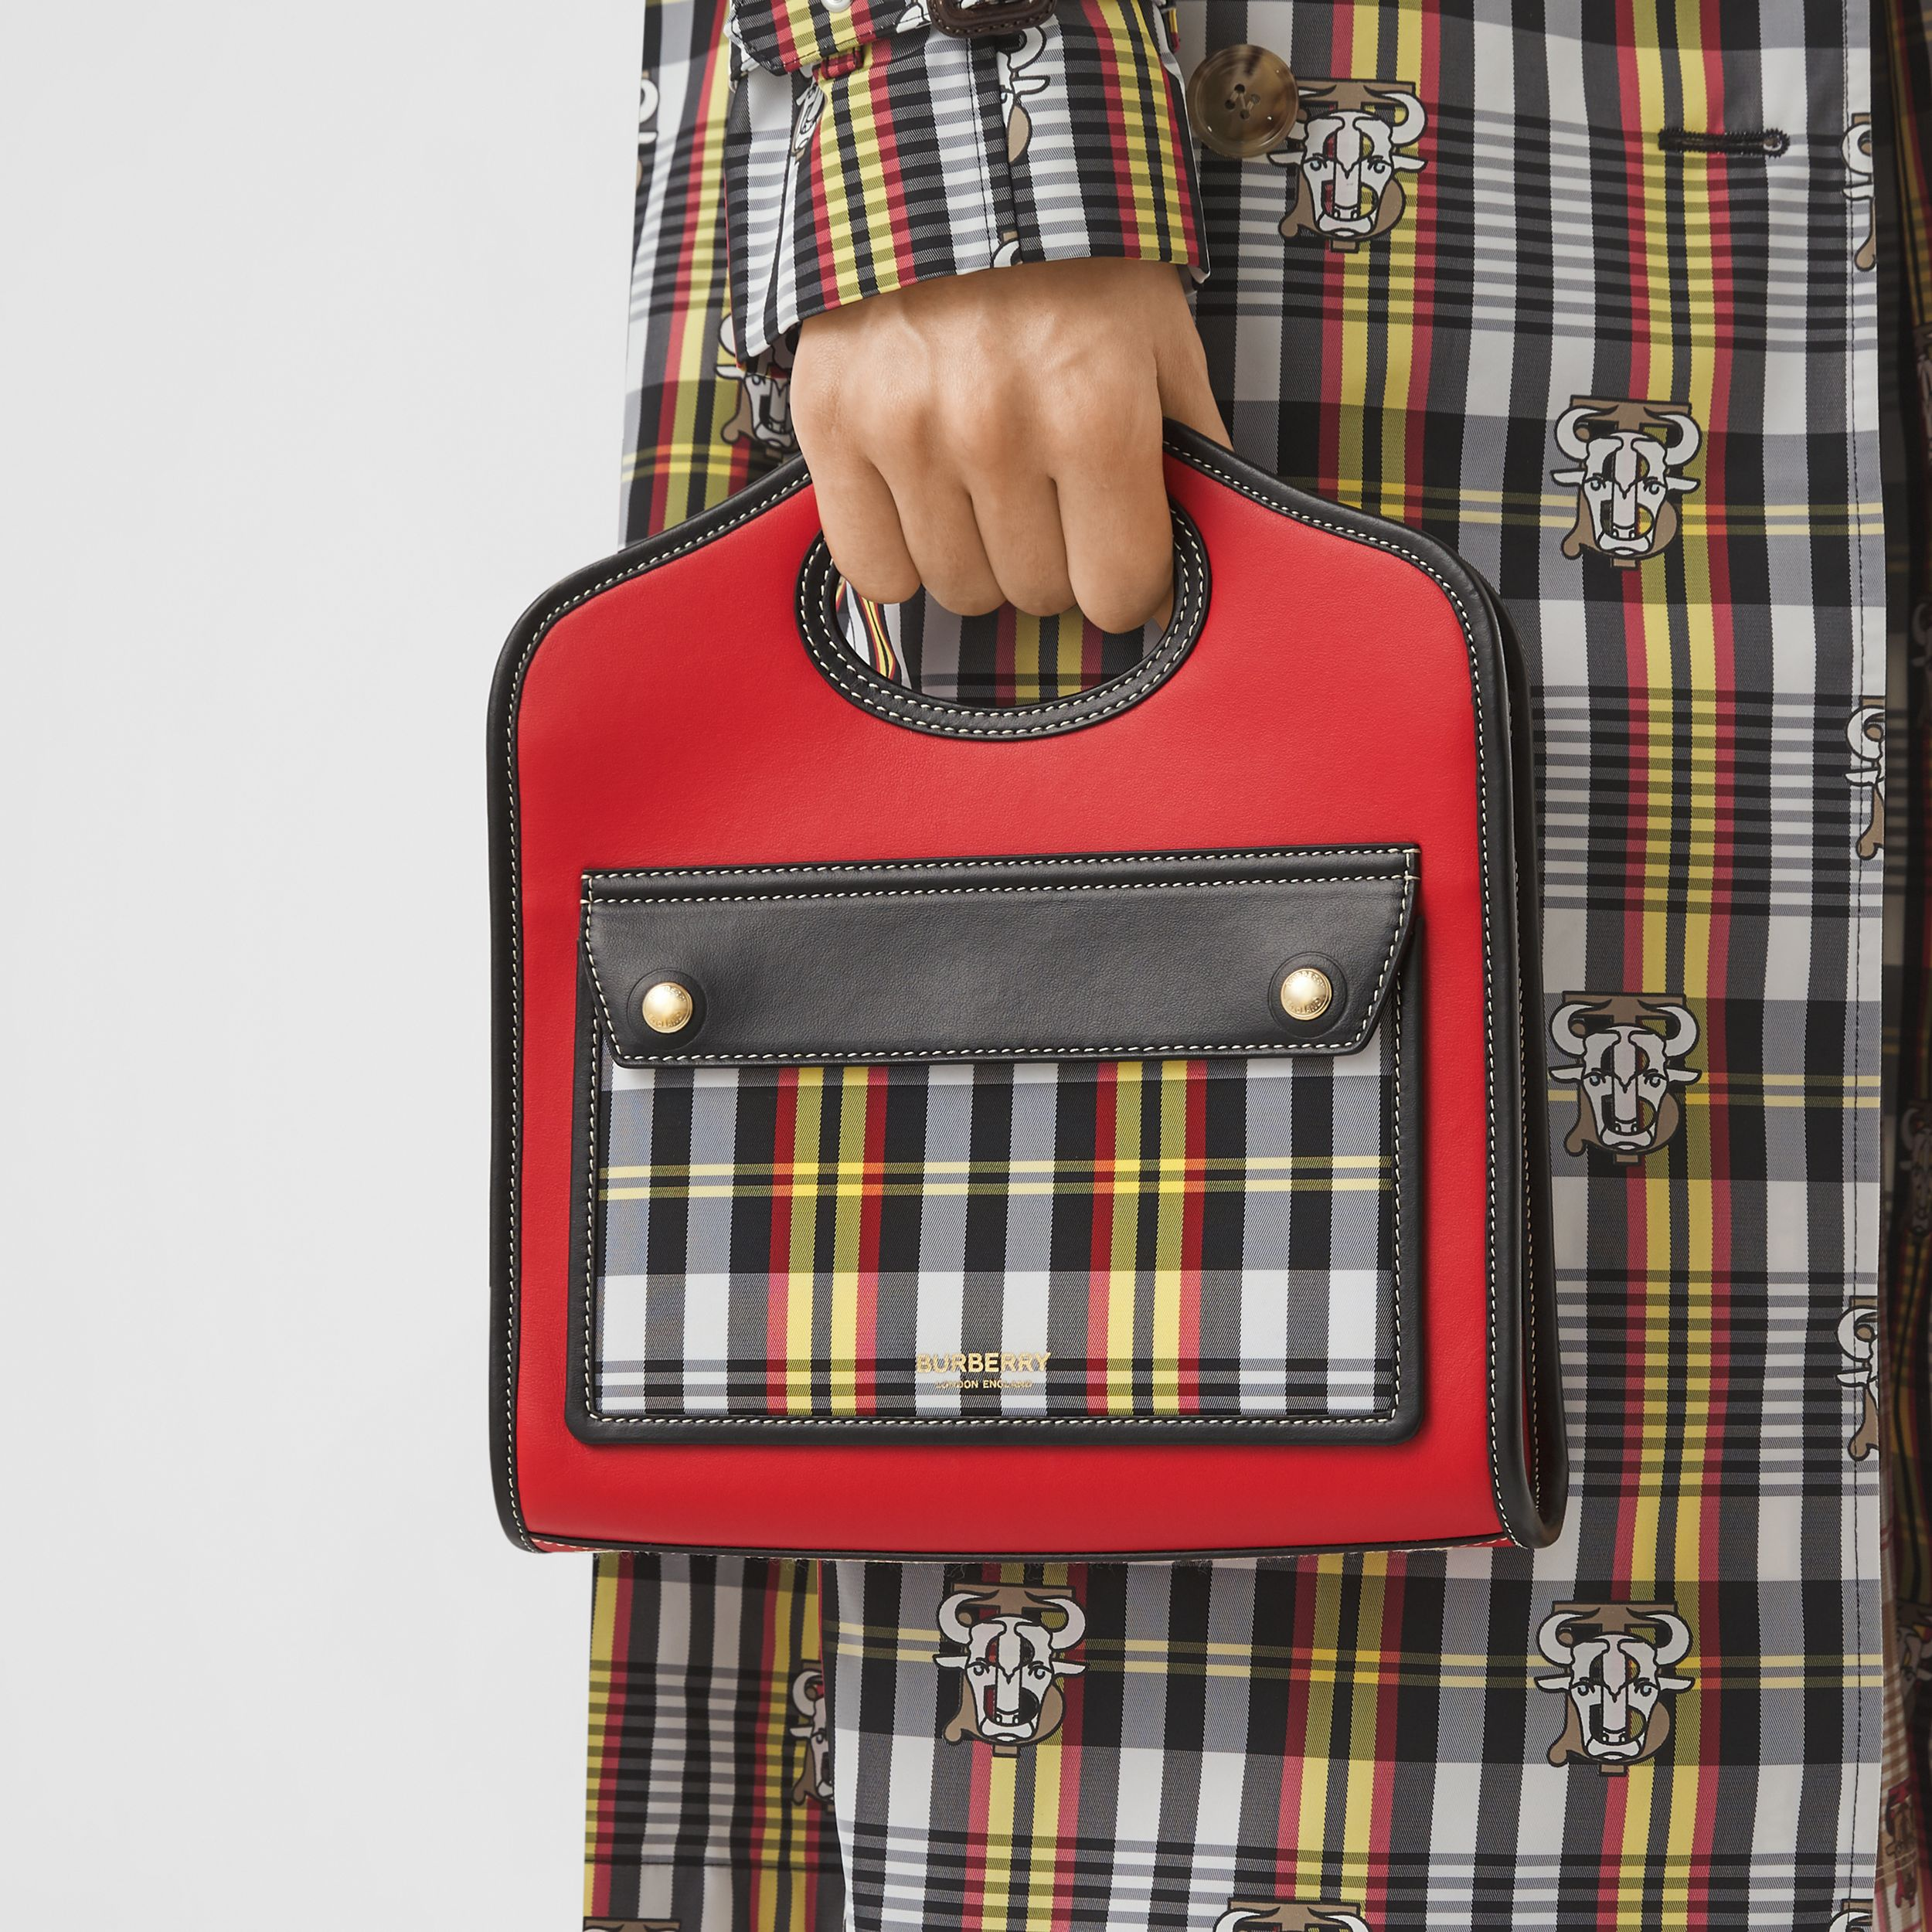 Mini Two-tone Leather and Check Pocket Bag in Bright Red - Women | Burberry - 3